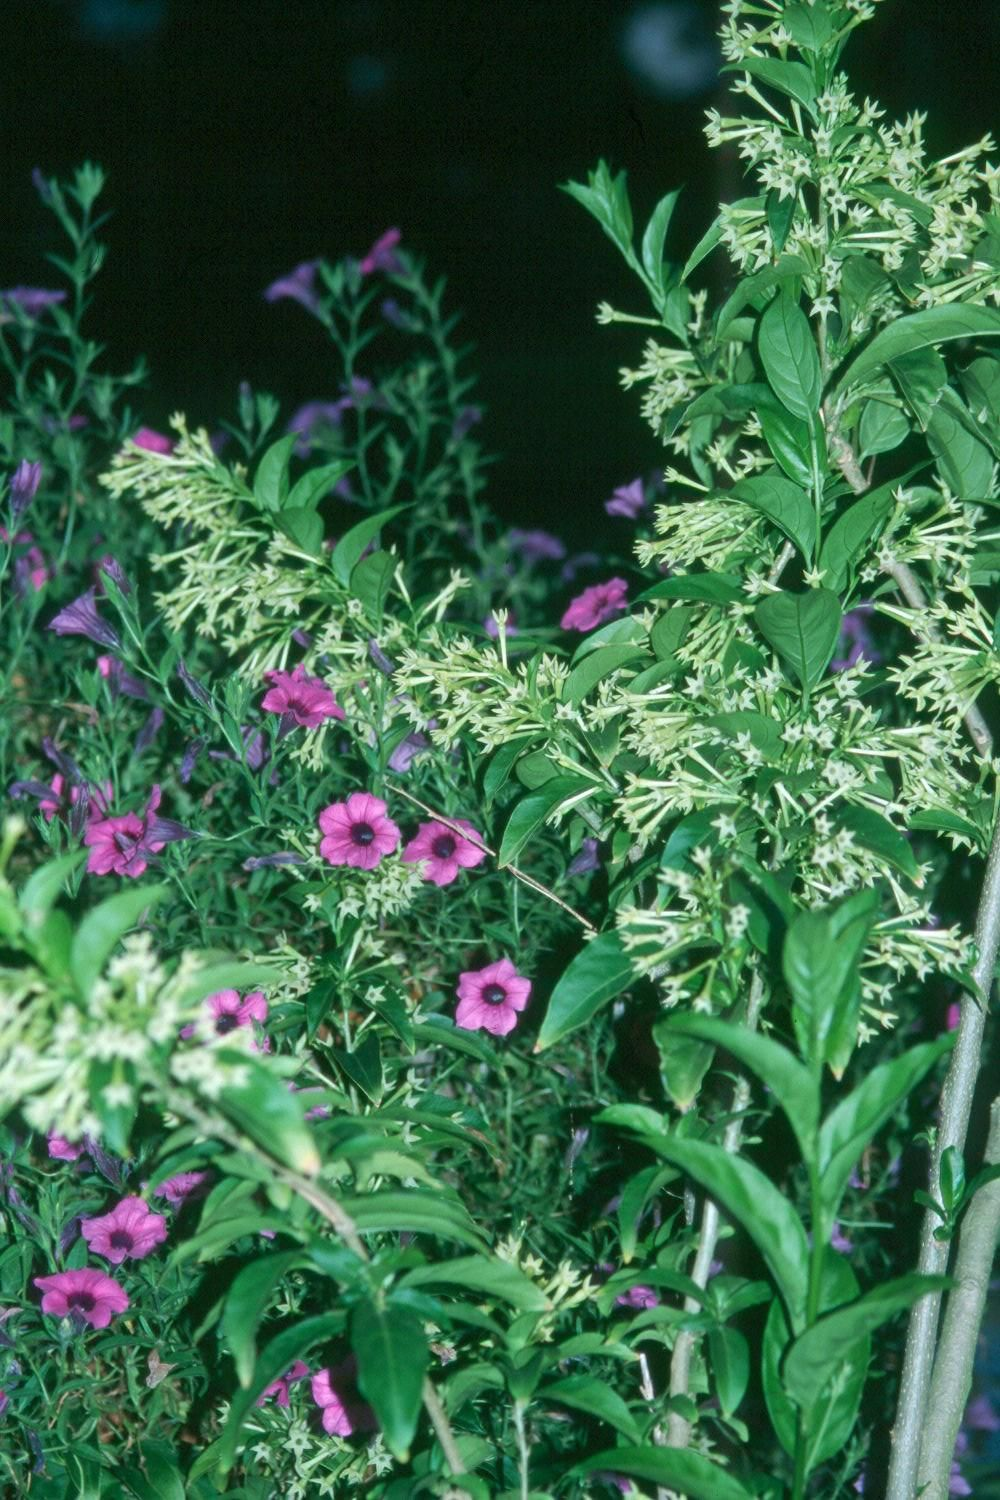 The Yellow Trumpet Shaped Flowers Of The Night Jasmine Give An